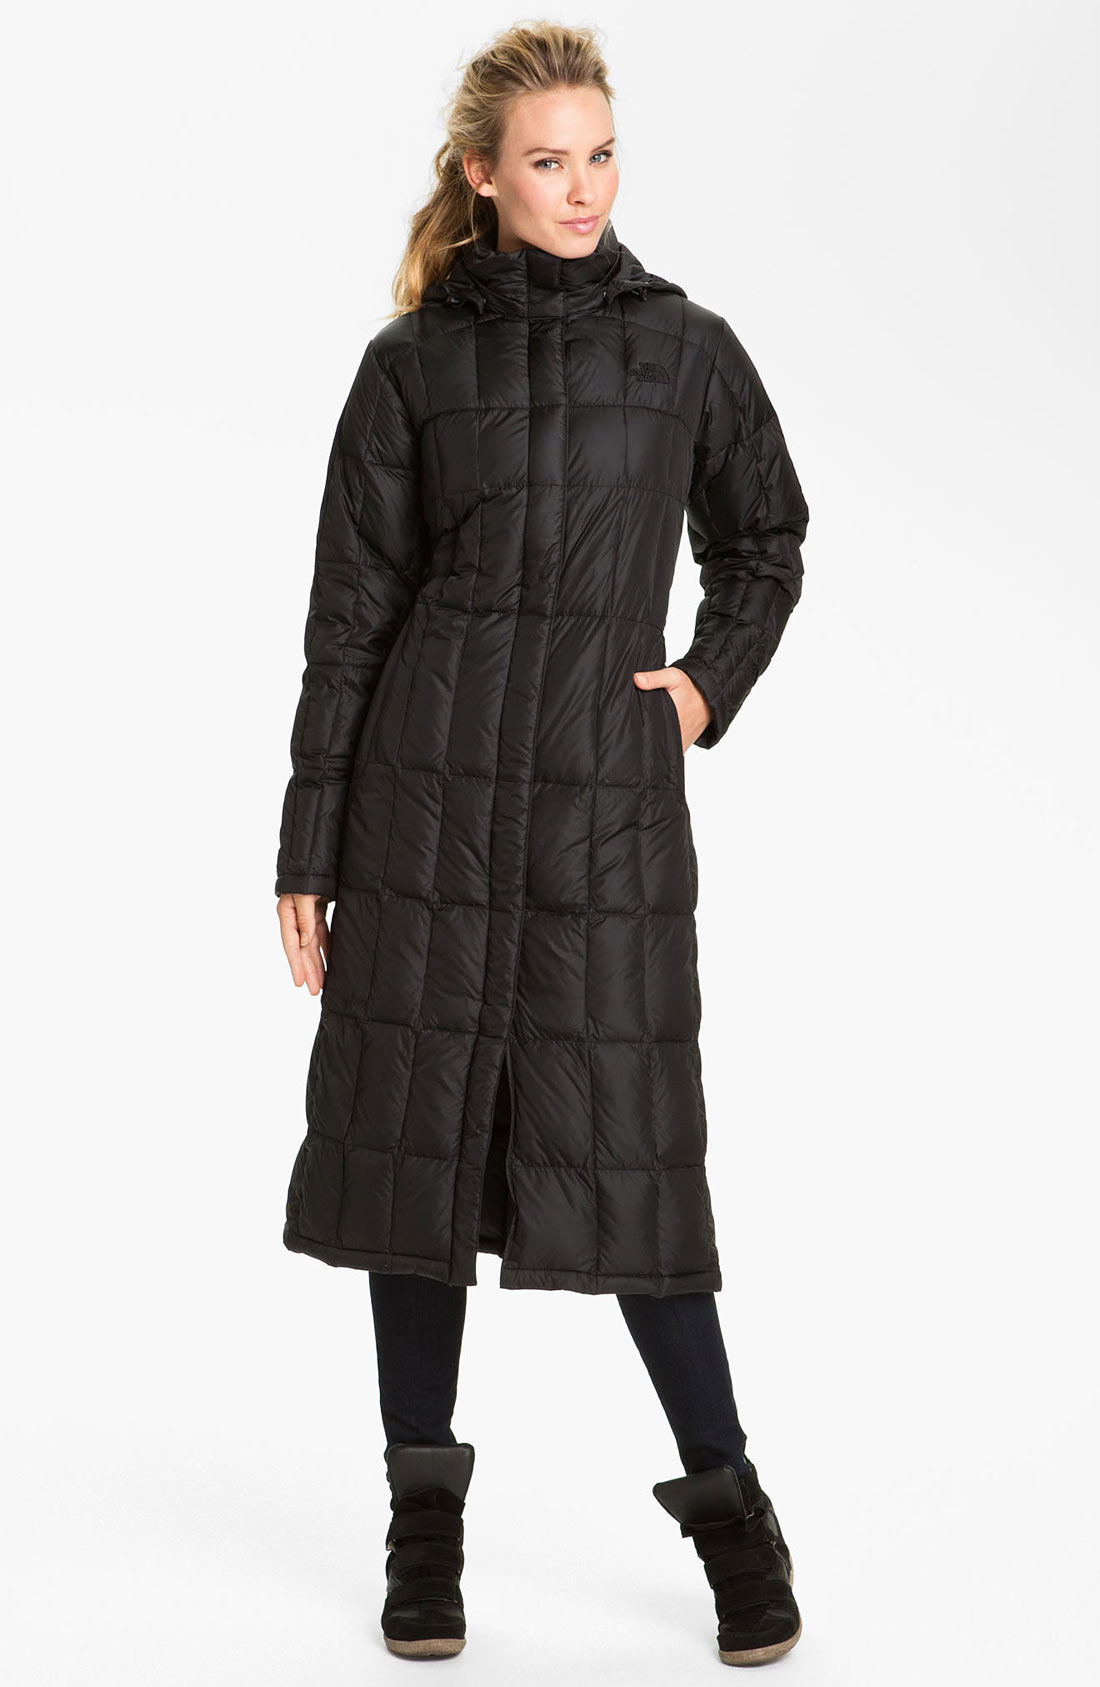 1a1025933 North face long womens coat. Clothing stores